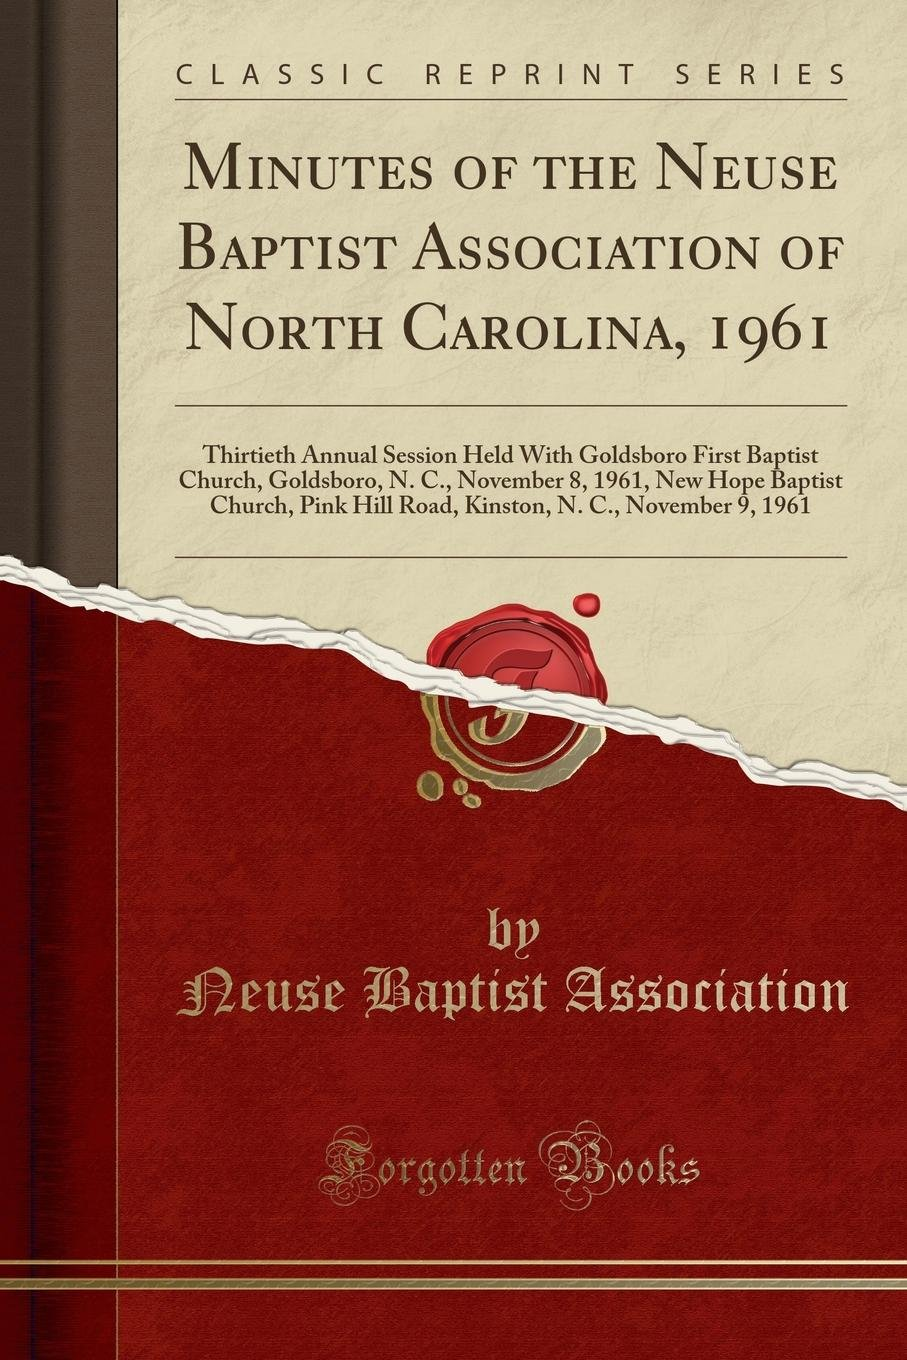 Read Online Minutes of the Neuse Baptist Association of North Carolina, 1961: Thirtieth Annual Session Held With Goldsboro First Baptist Church, Goldsboro, N. C., ... Hill Road, Kinston, N. C., November 9, 1961 PDF